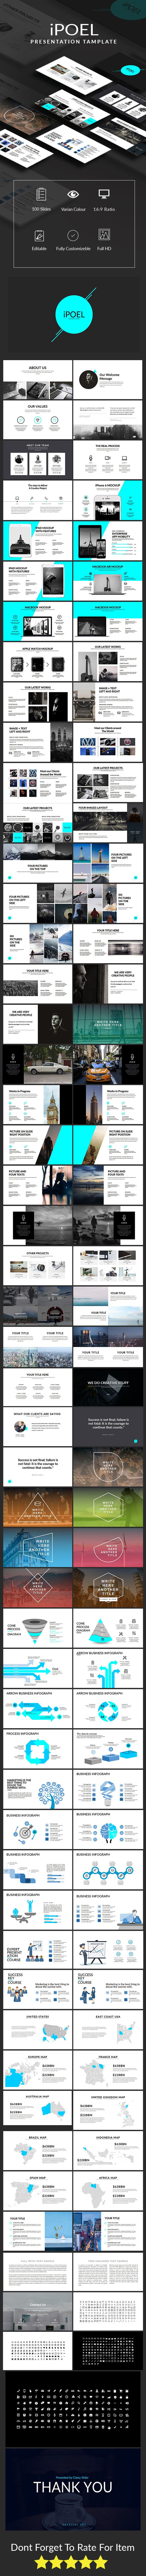 iPOEL Multipurpose Template